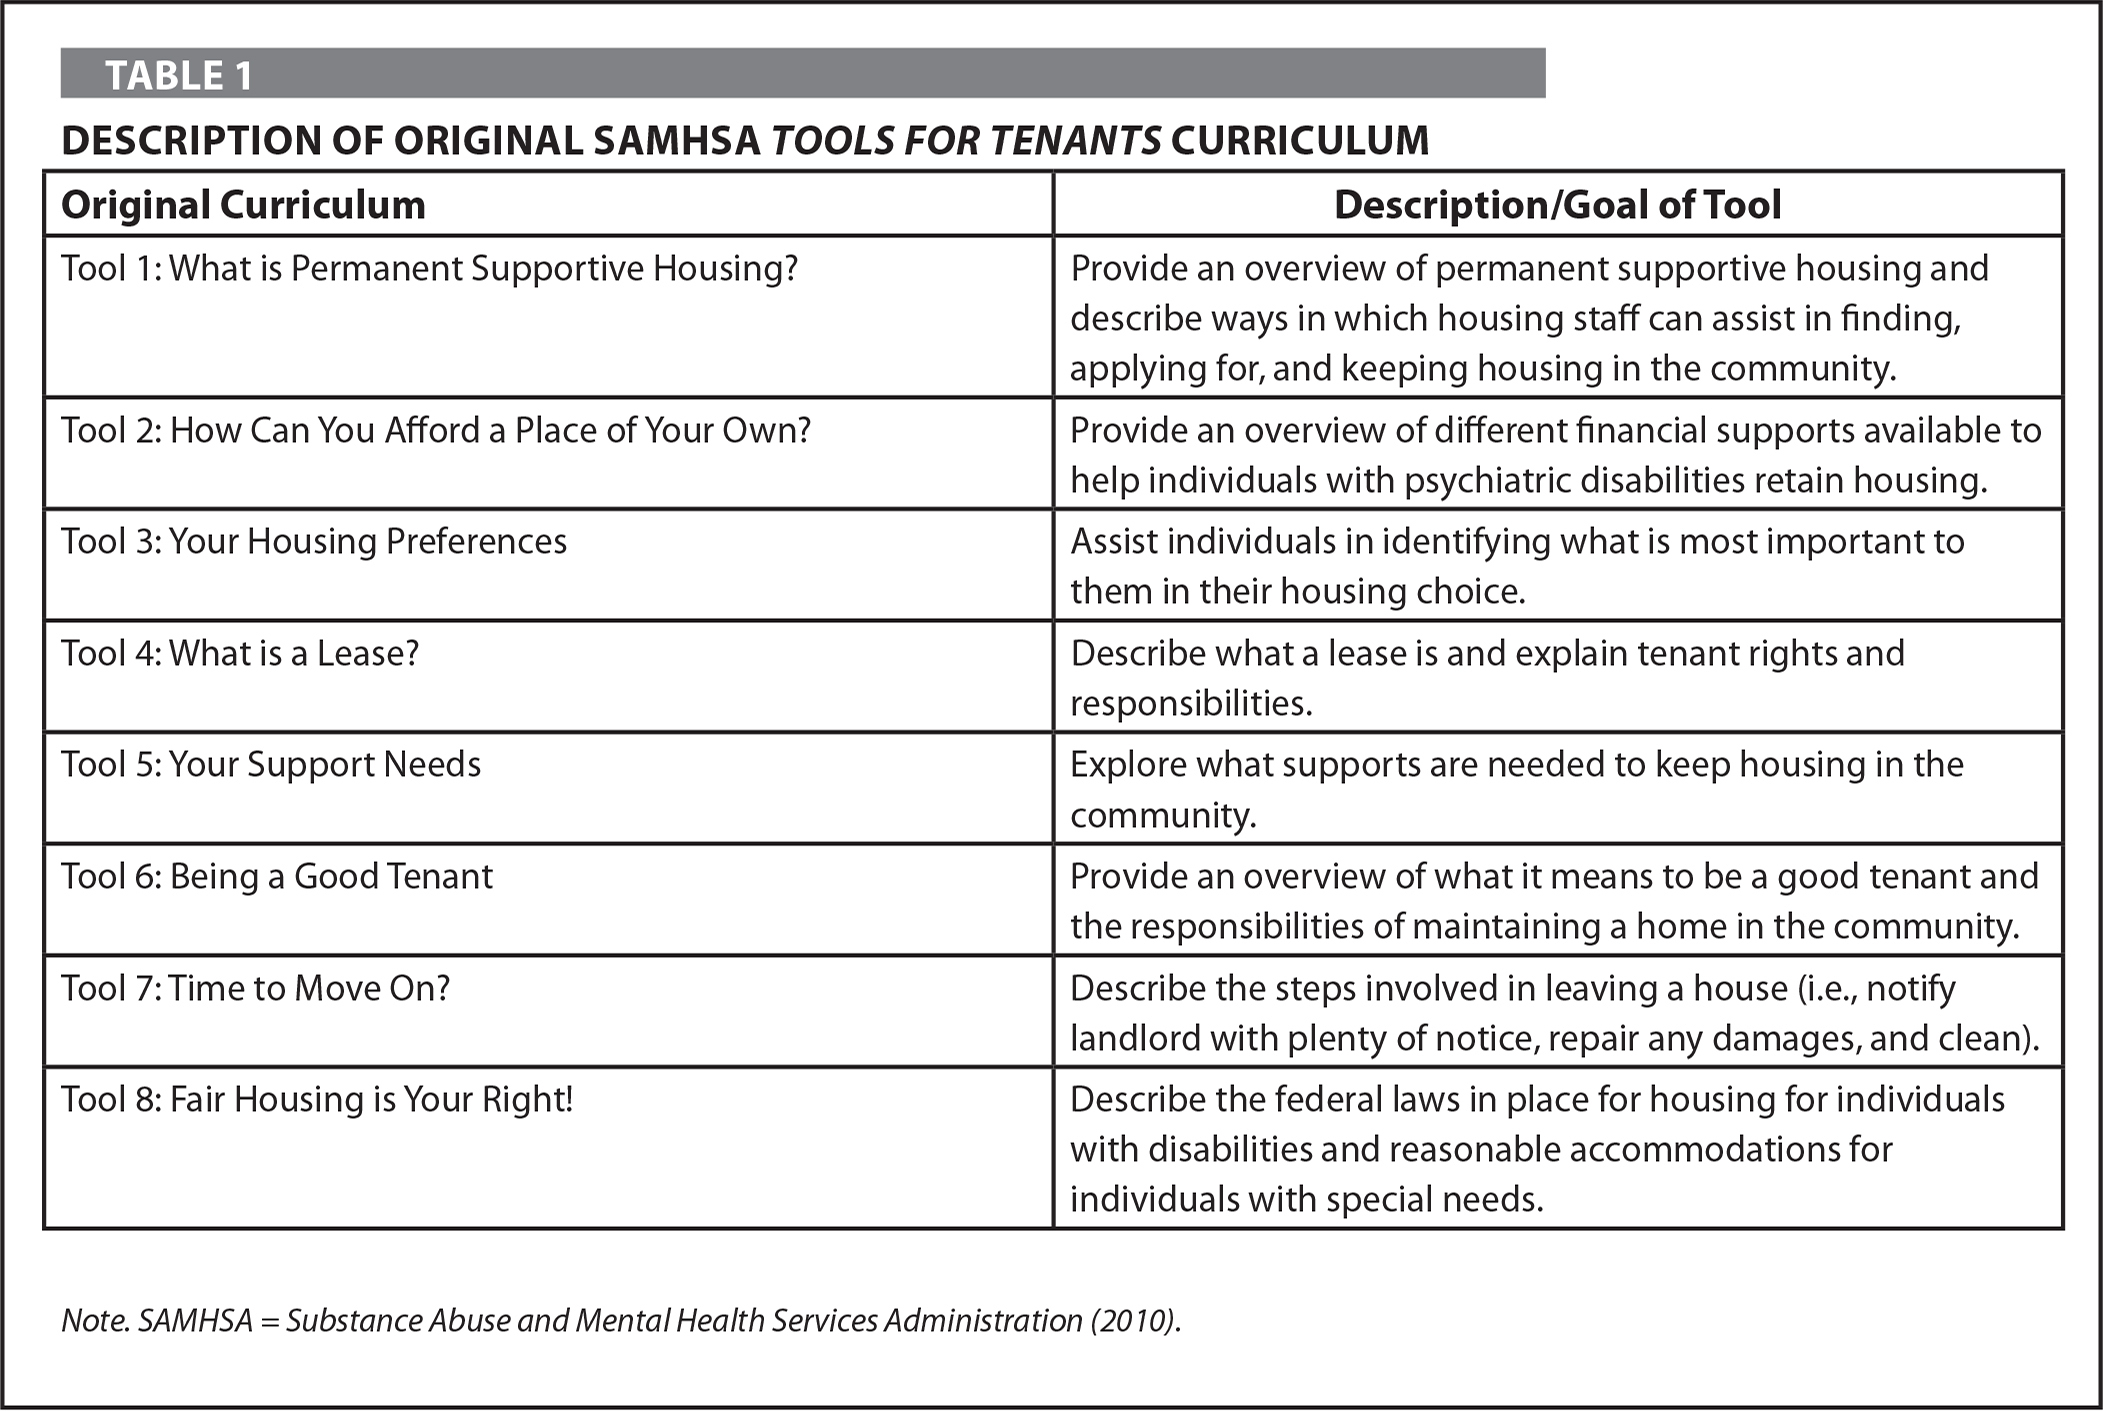 Description of Original SAMSHA Tools for Tenants Curriculum